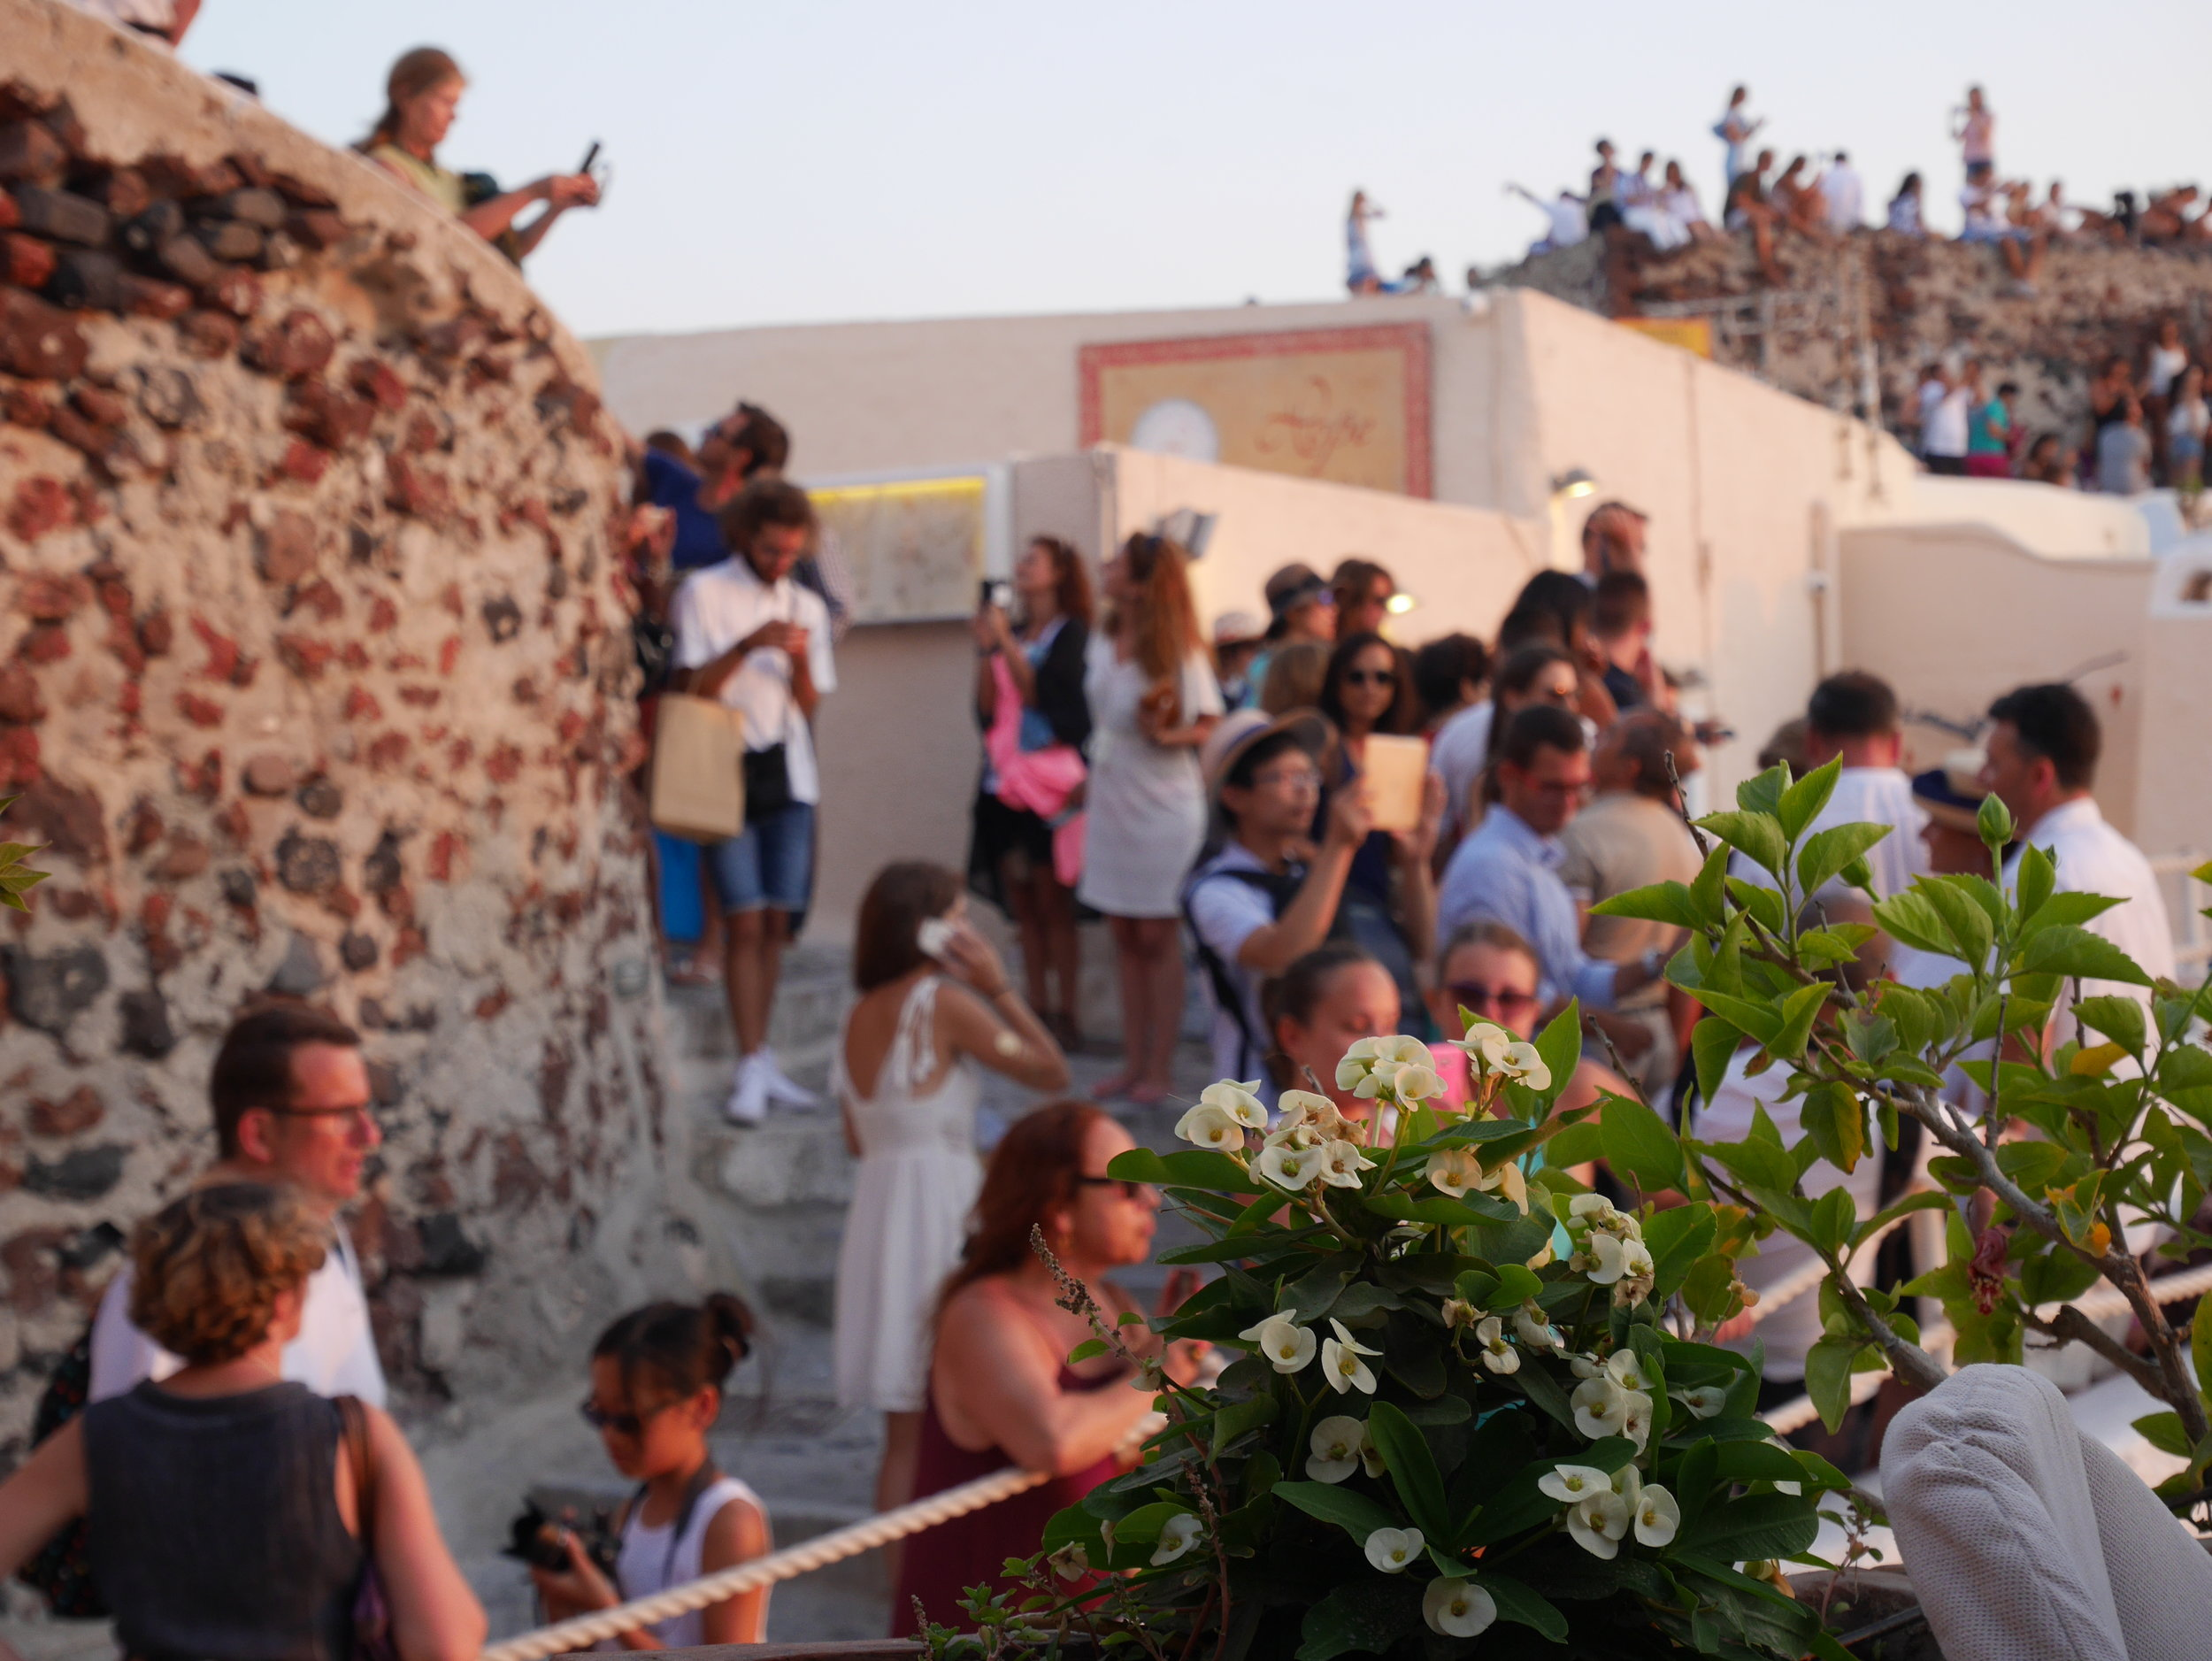 The crowds waiting to watch the sunset